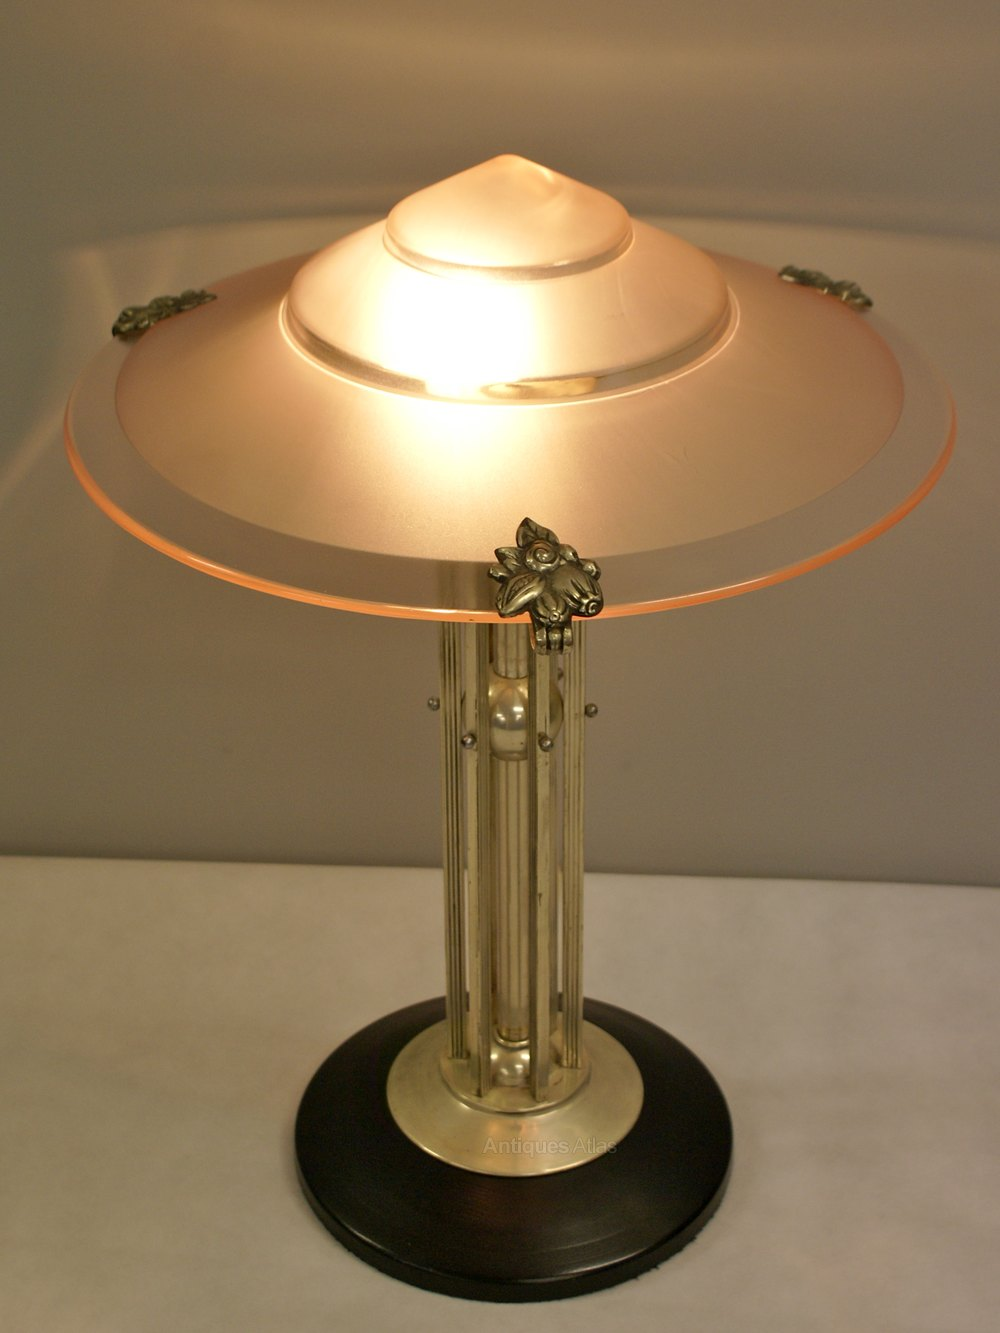 Trend An Art Deco table lamp Antique Lighting Table Lamps